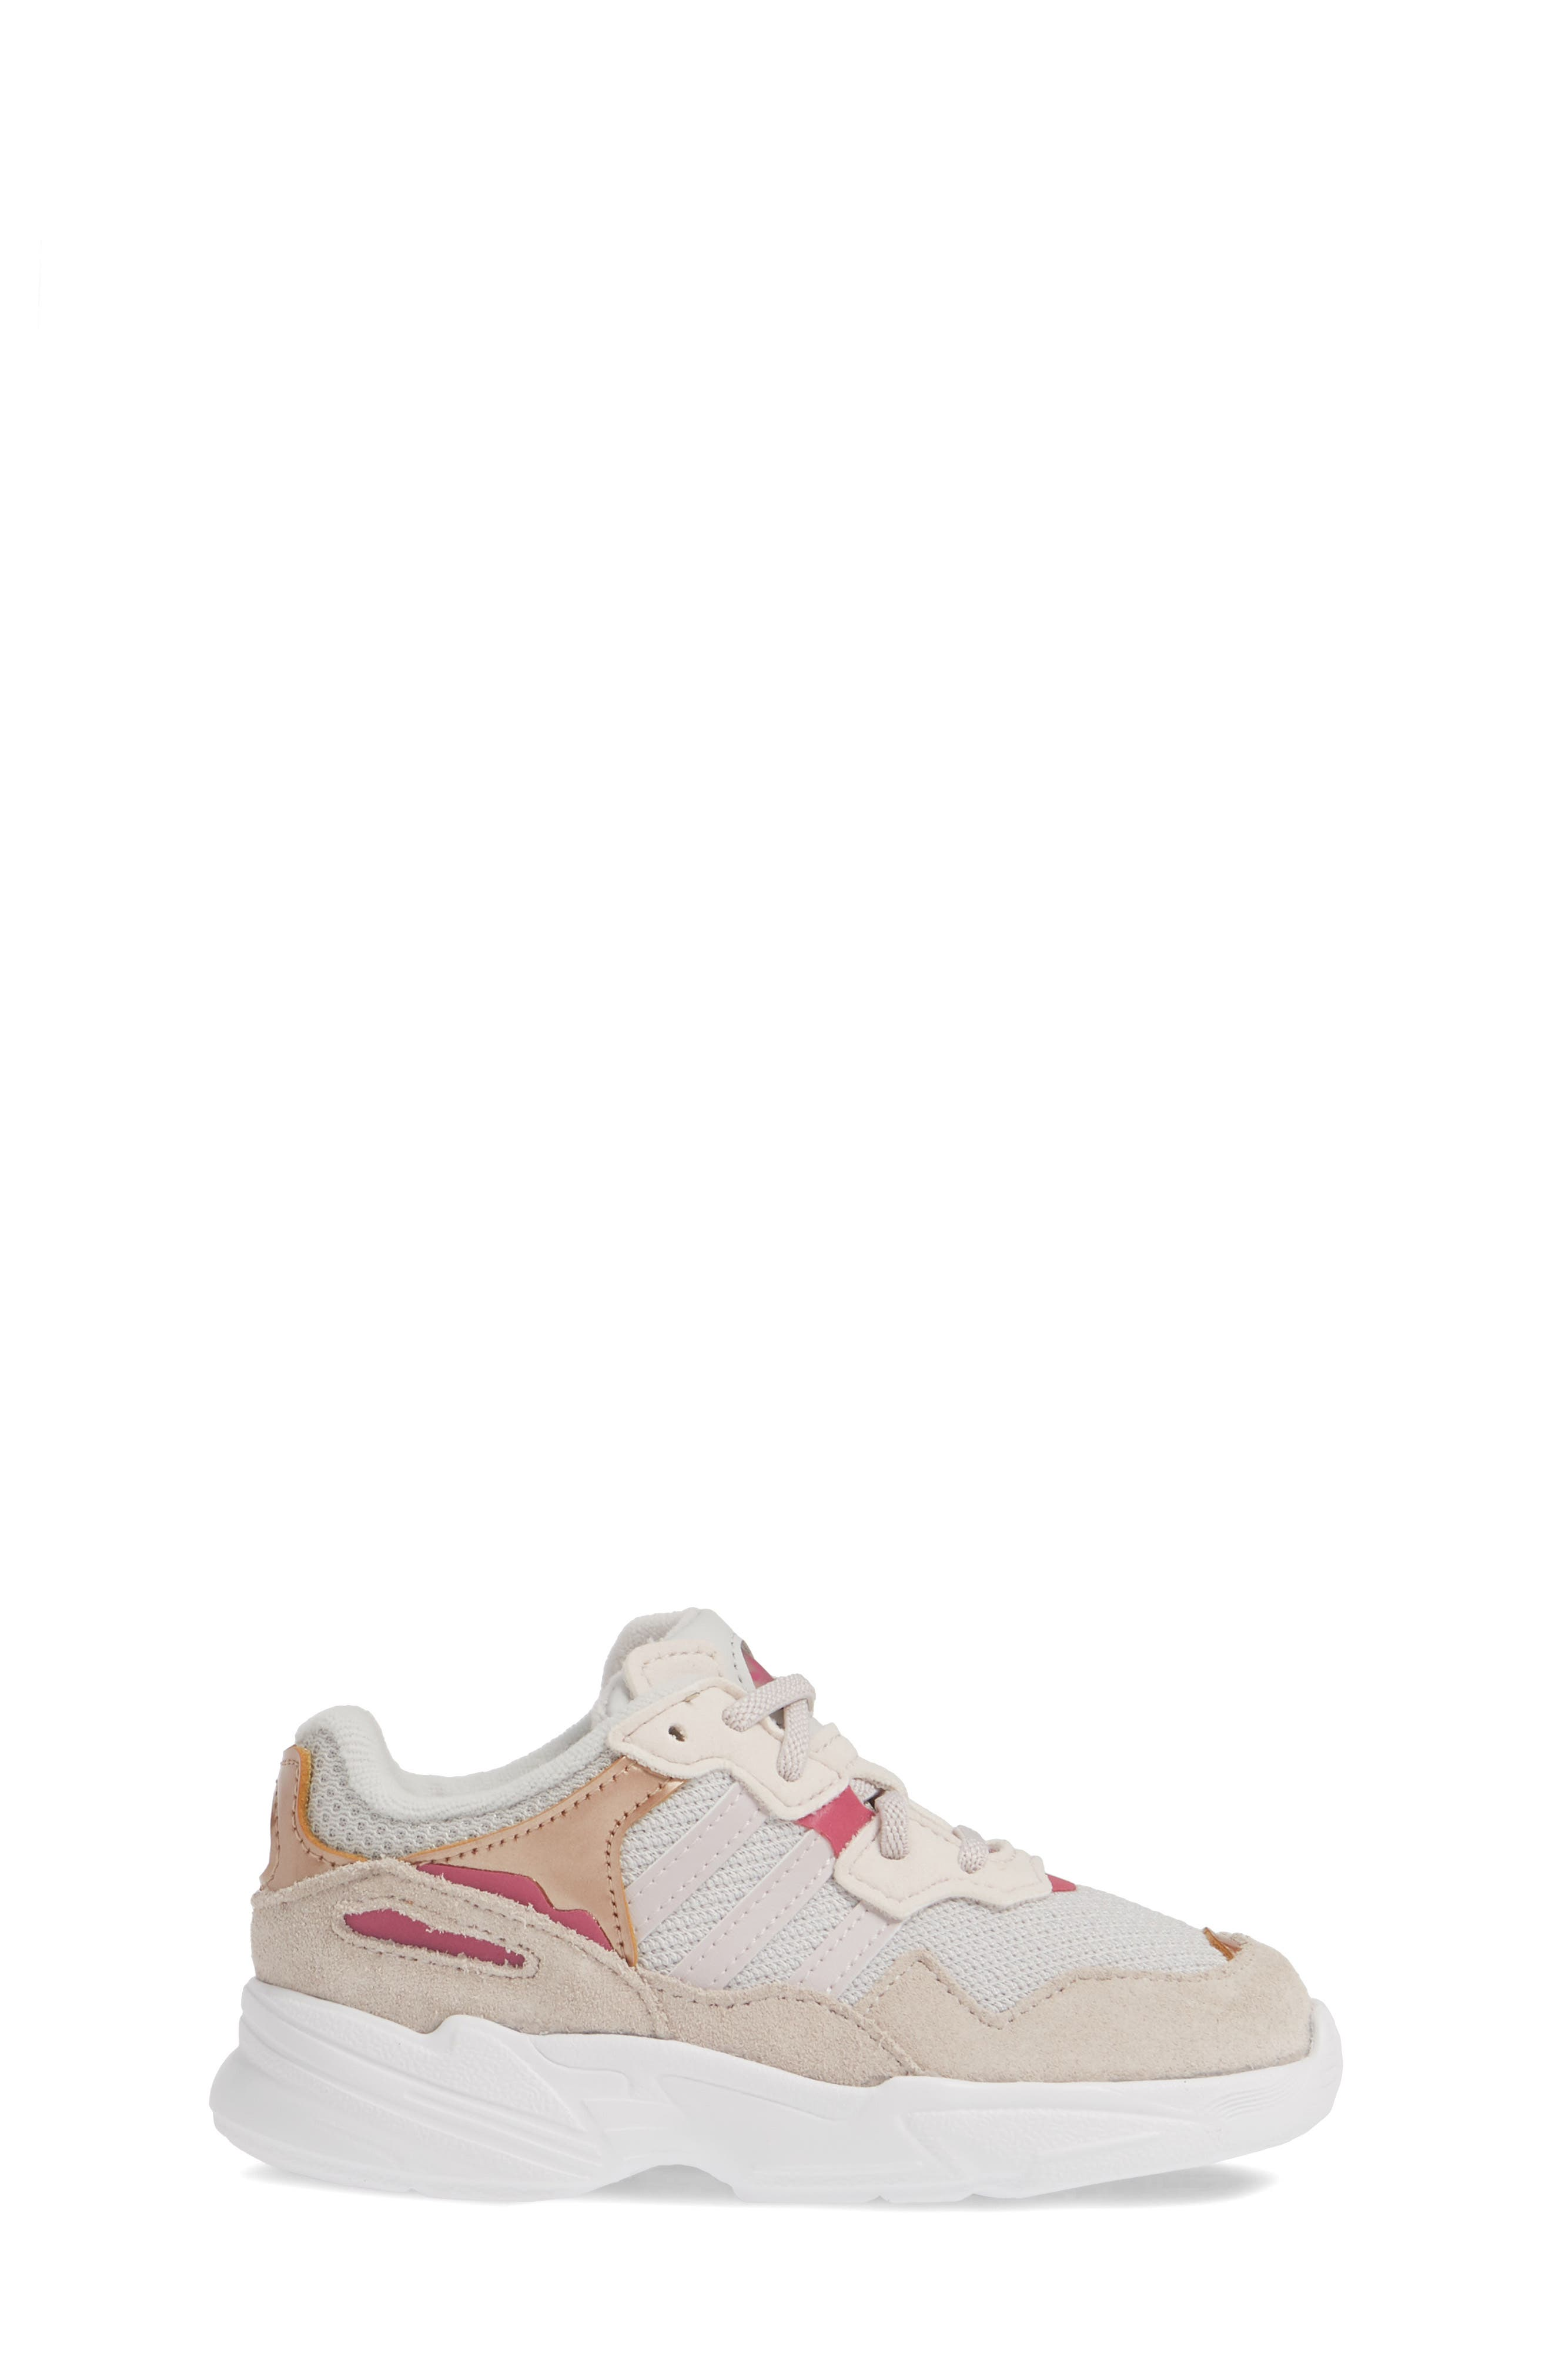 Yung-96 Sneaker,                             Alternate thumbnail 3, color,                             GREY TWO/ ORCHID/ TRUE PINK